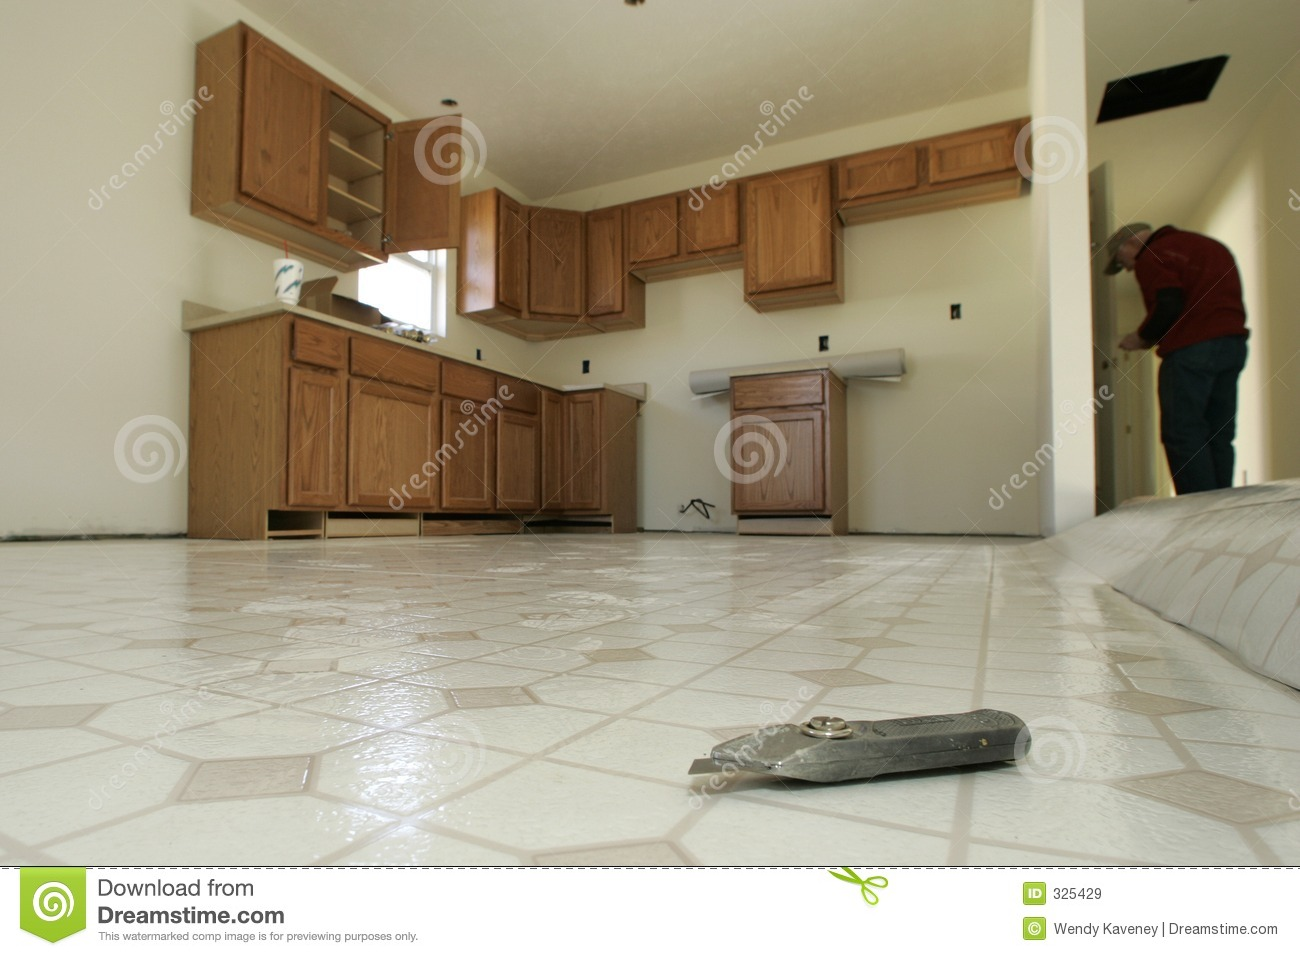 Kitchen floor installation royalty free stock images for Kitchen flooring installation